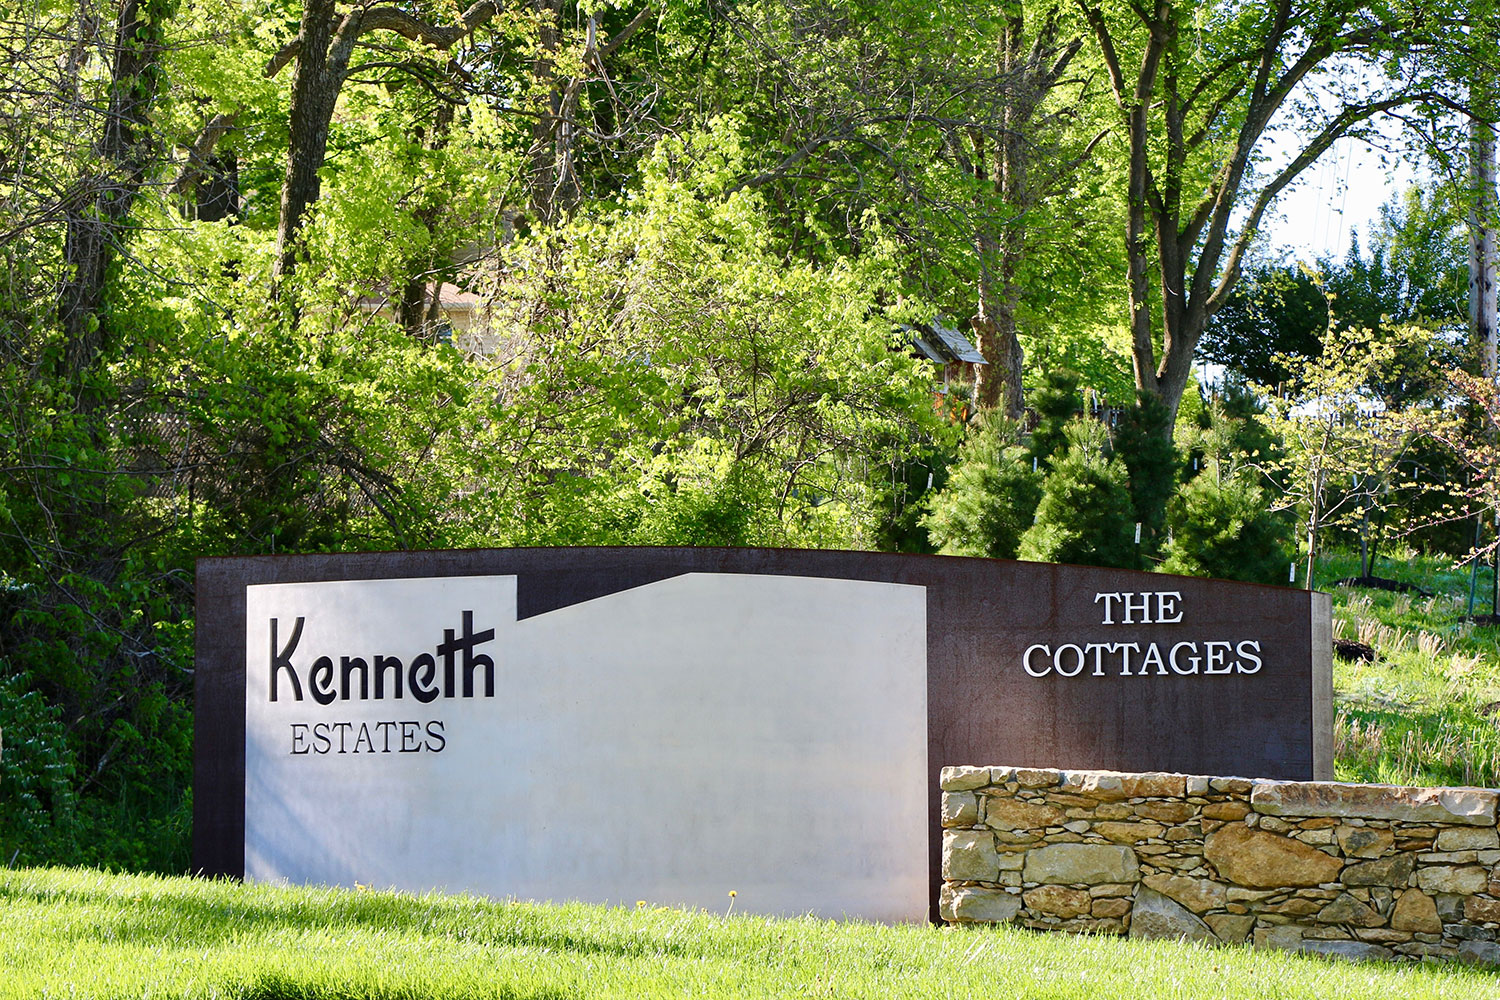 Kenneth-Estates-thecottages-entry-monument